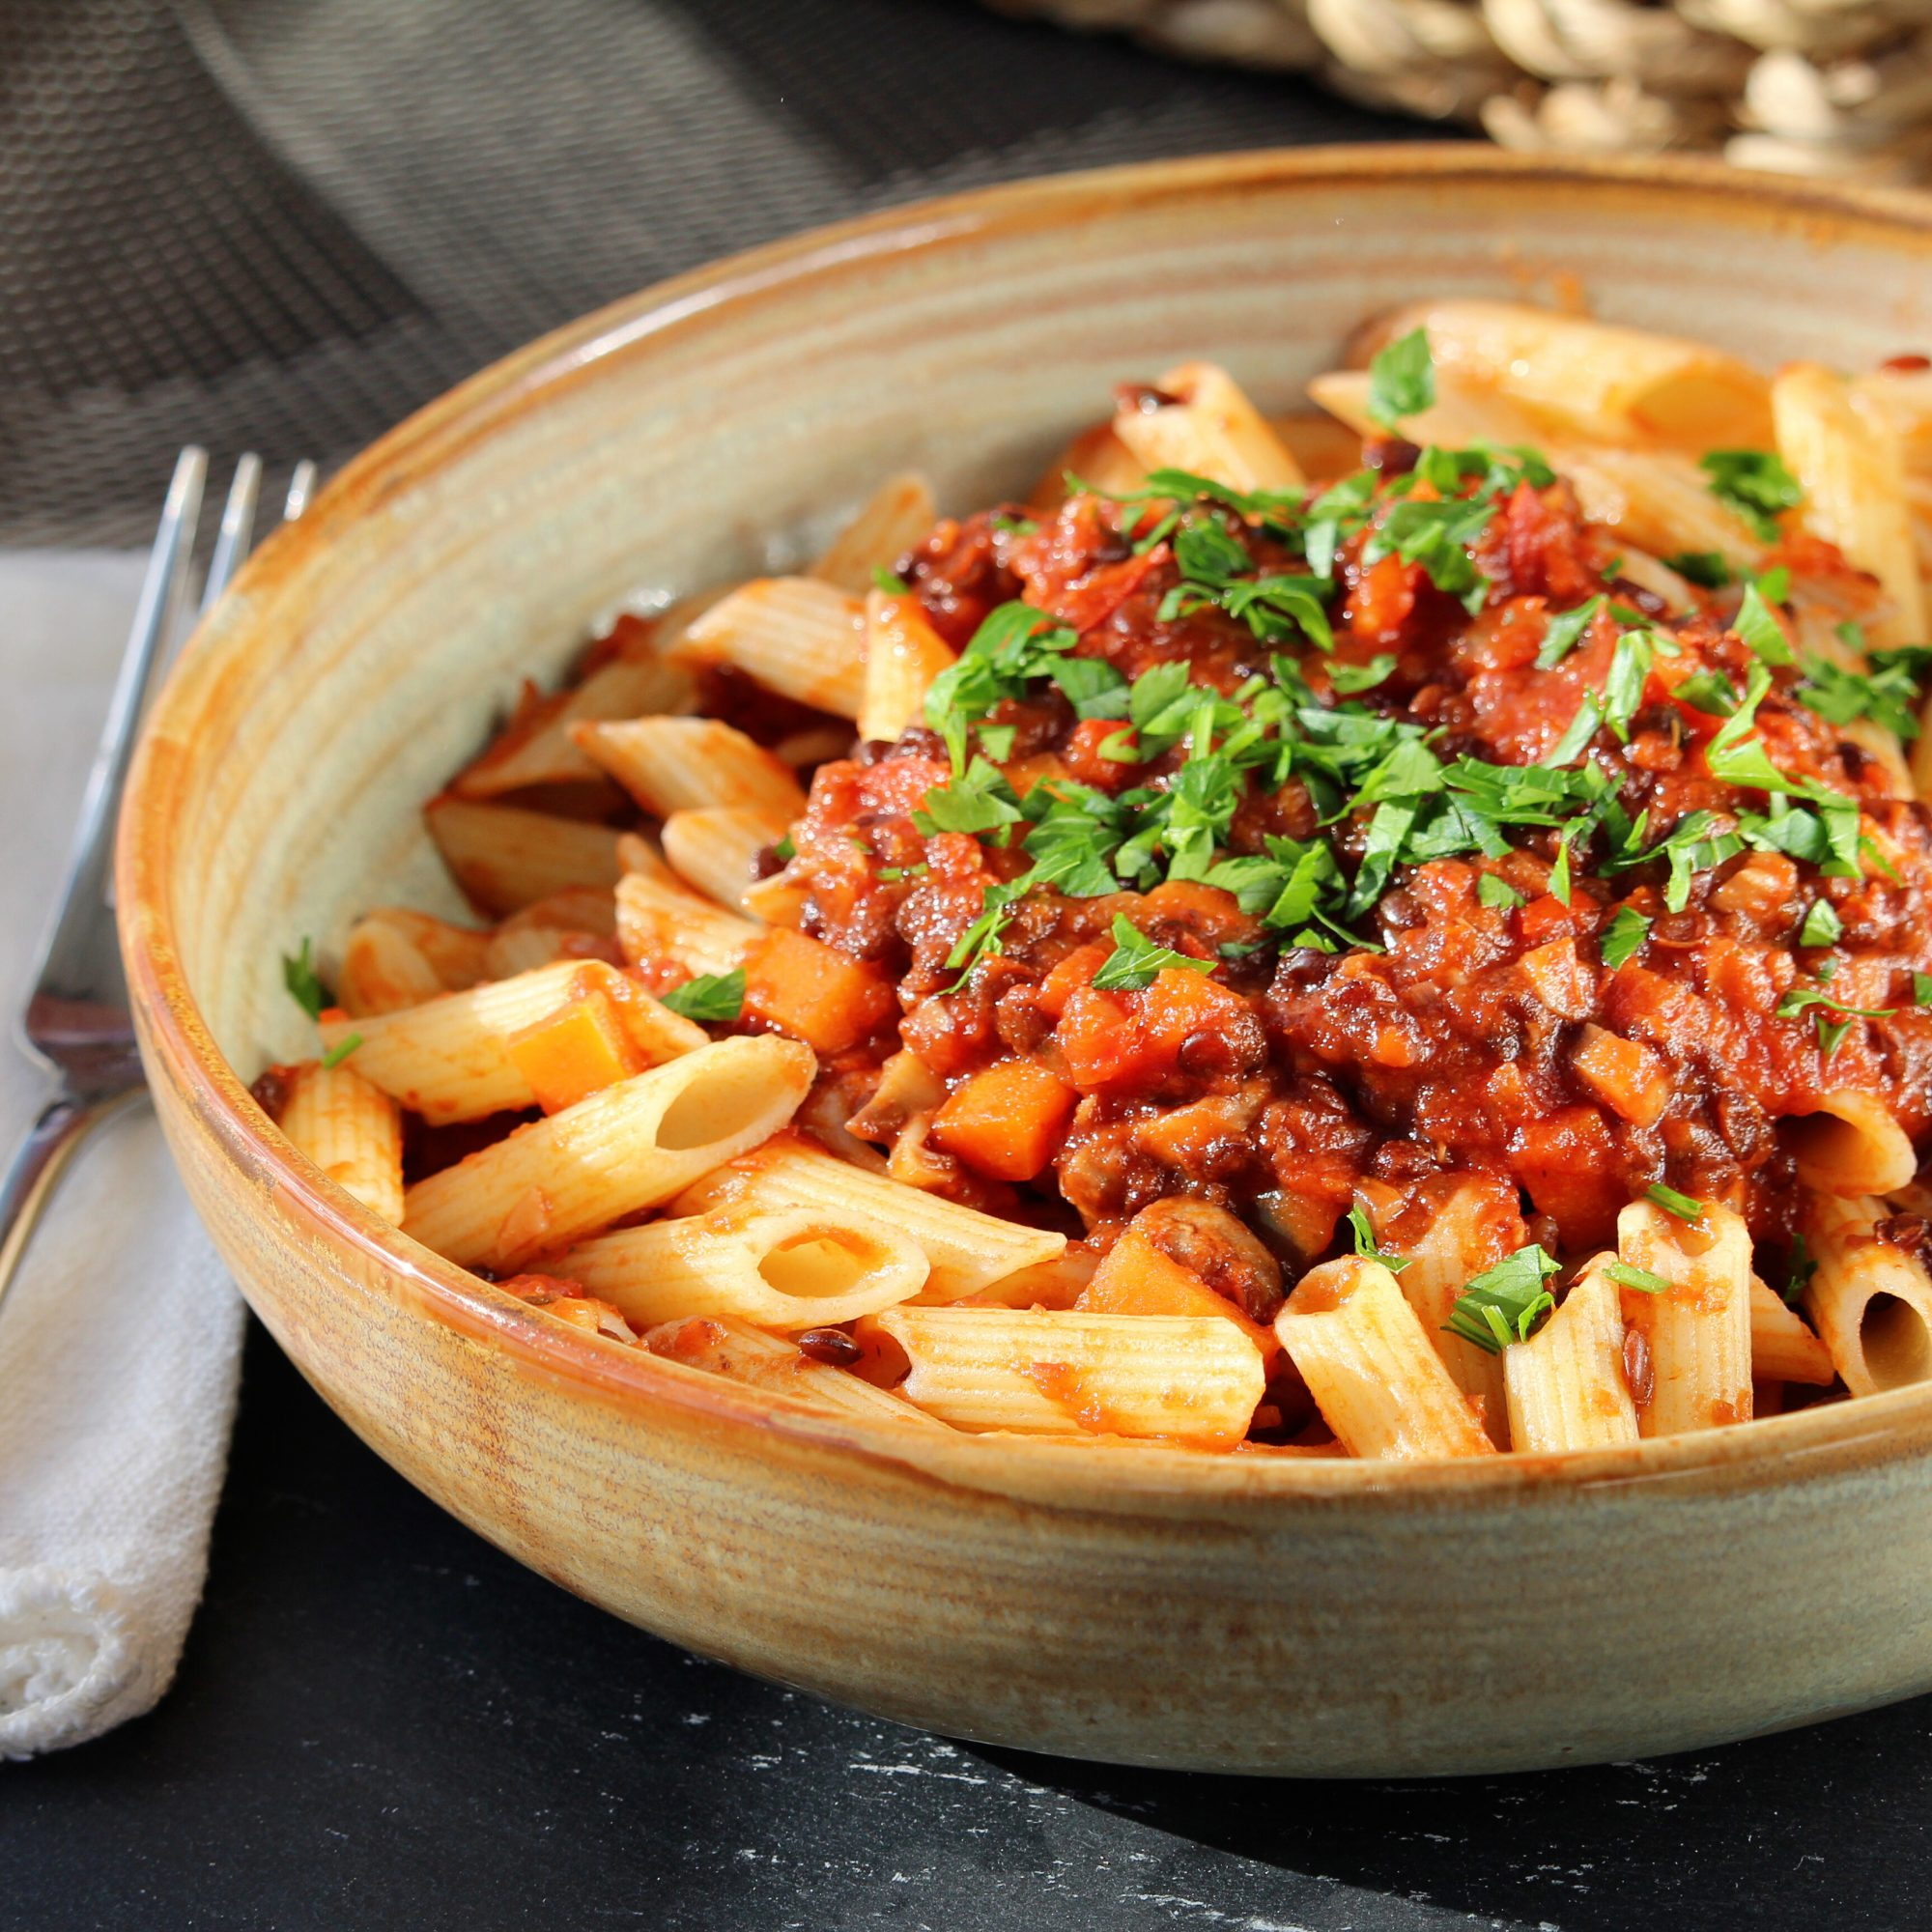 Lentil Bolognese in a ceramic bowl